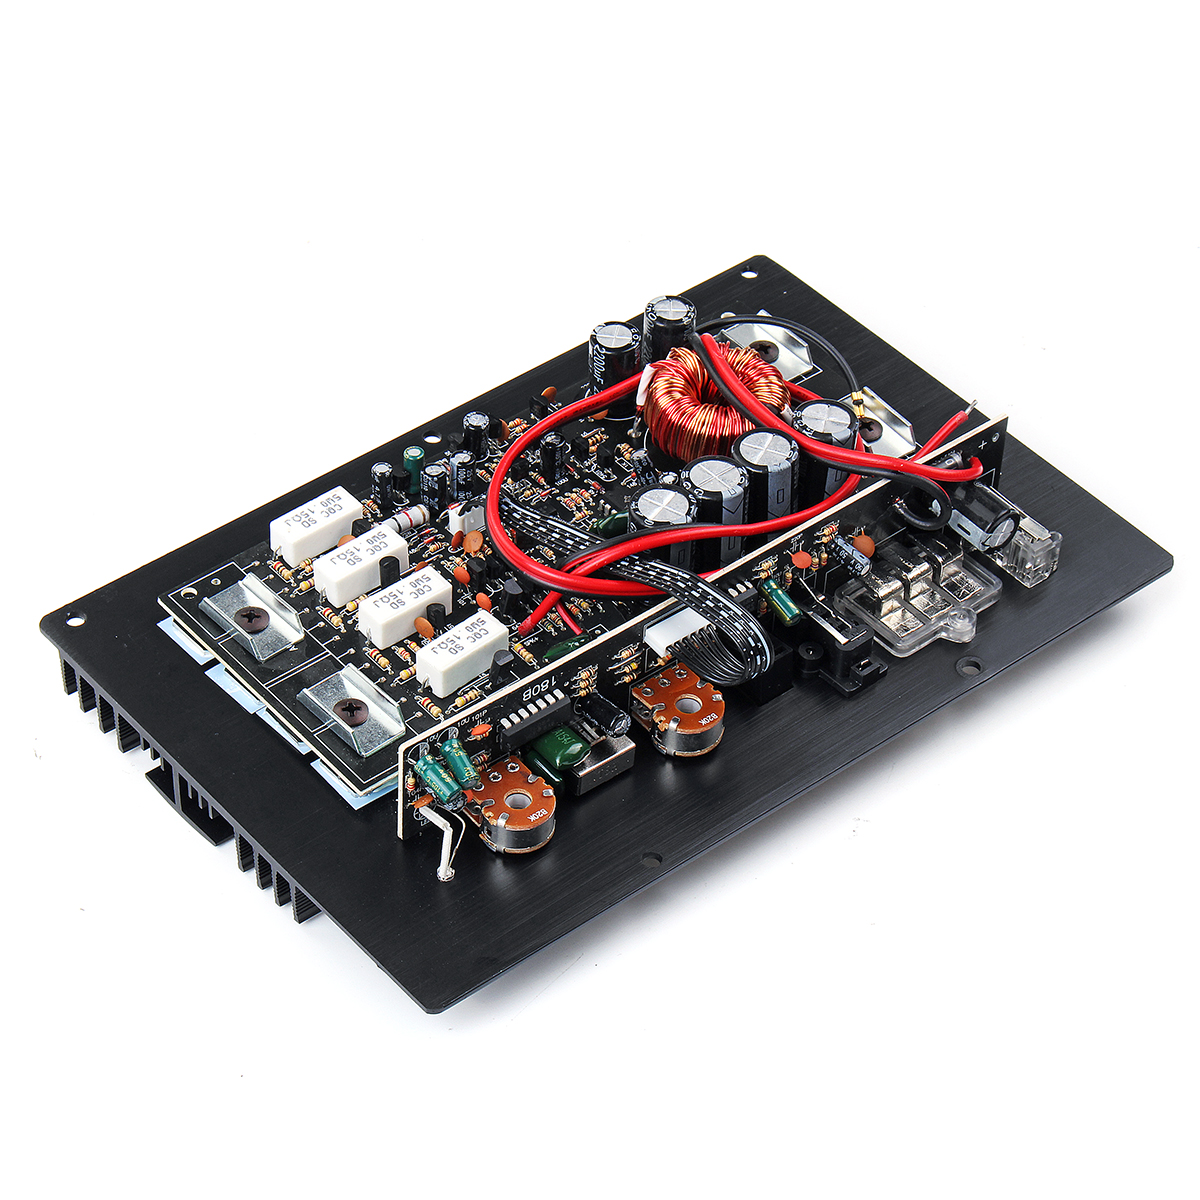 12V 600W Car Audio High Power Car Amplifier Amp Board Powerful Subwoofer